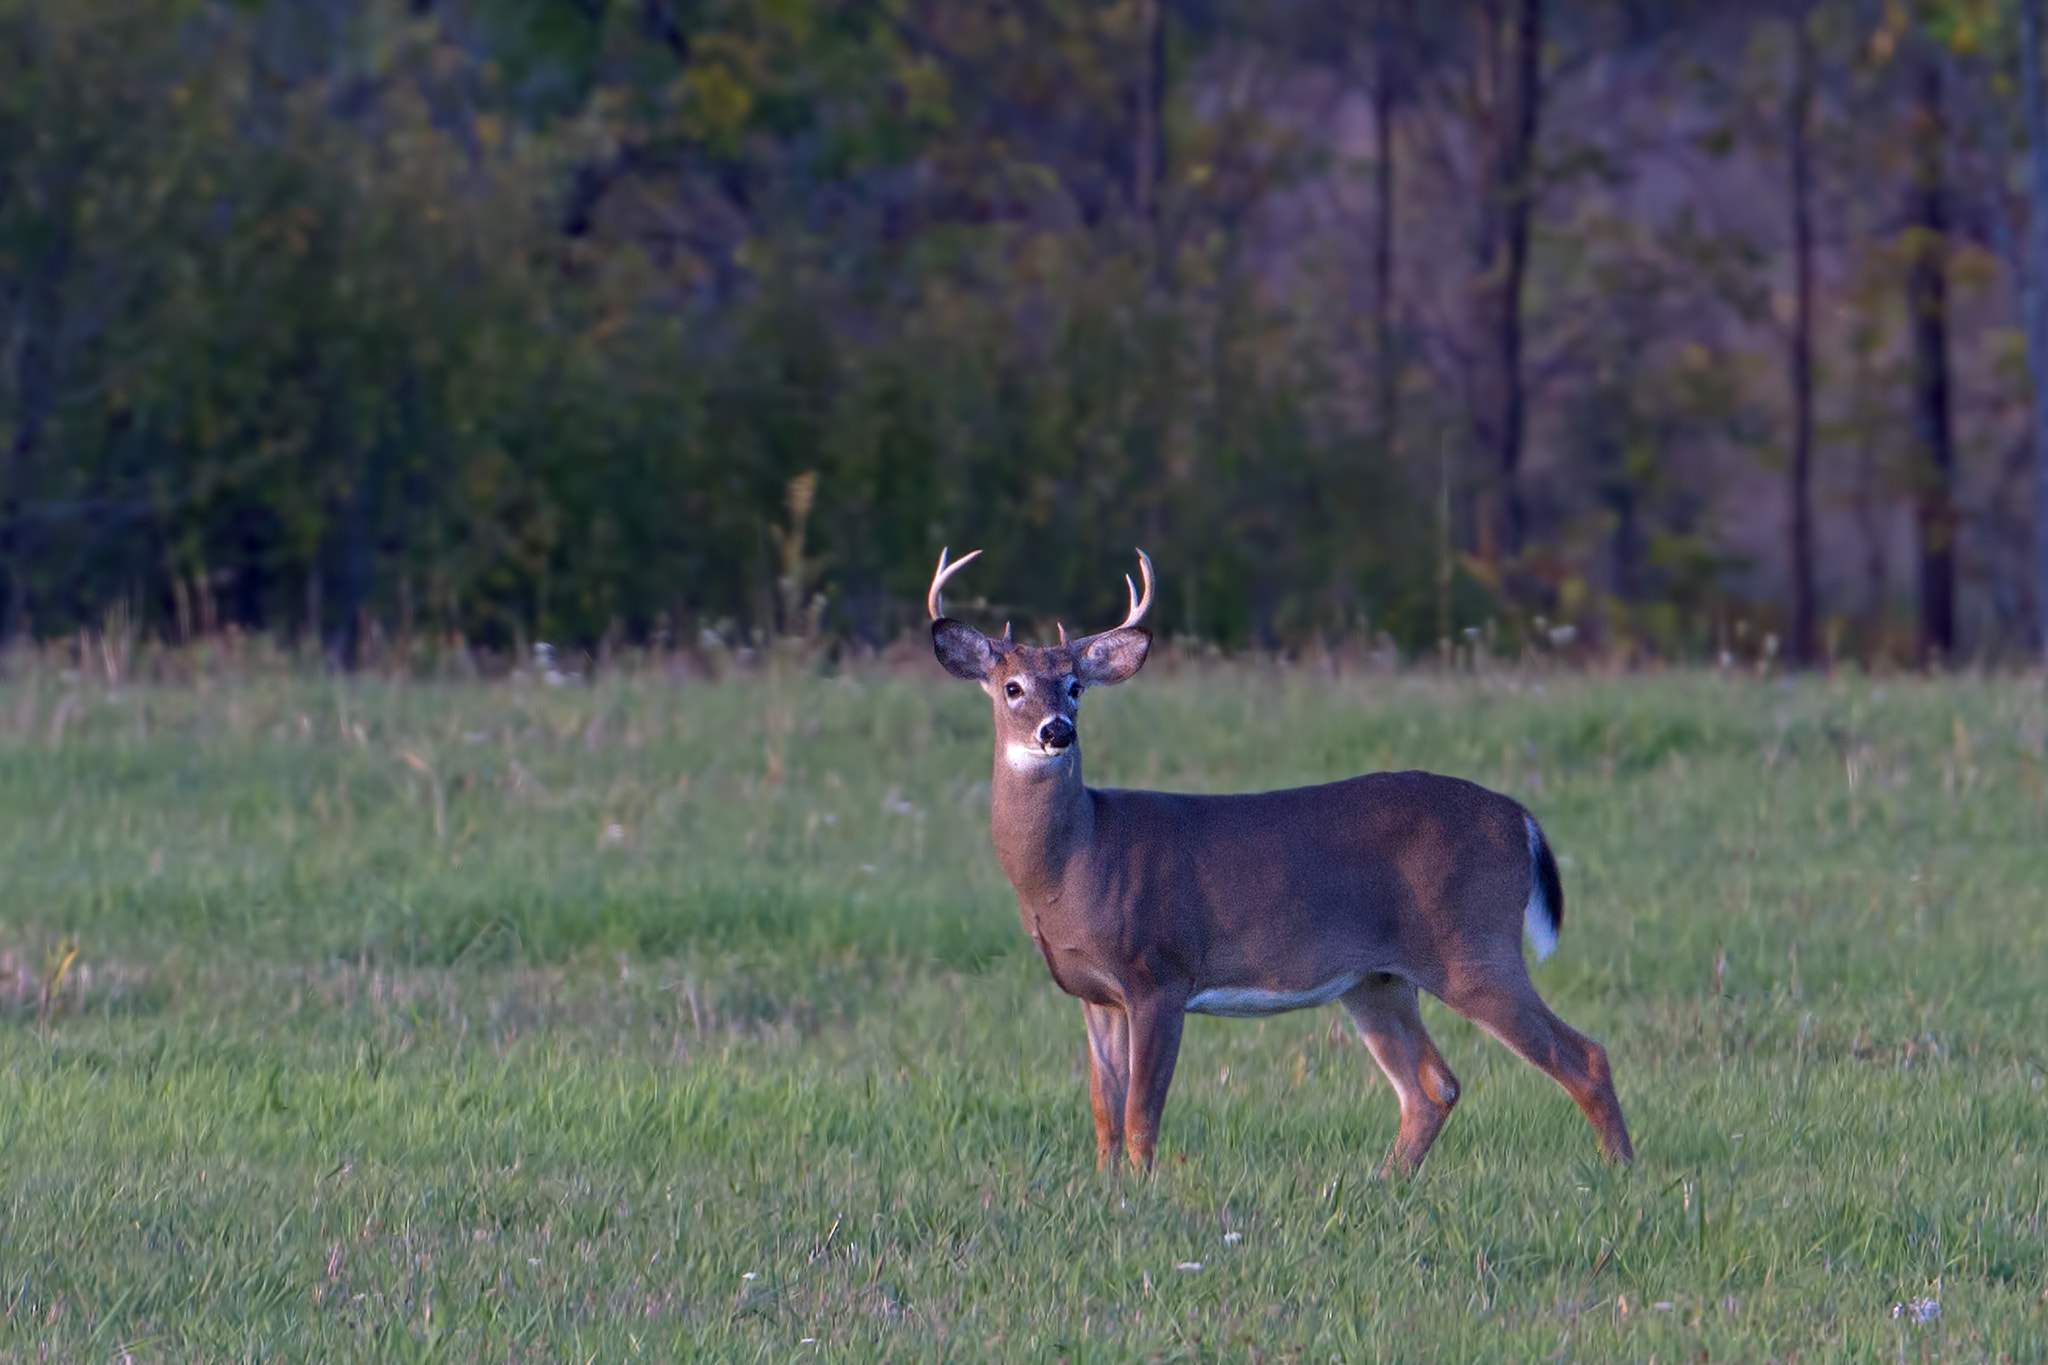 Photograph September Buck - White-tailed deer by Jim Cumming on 500px